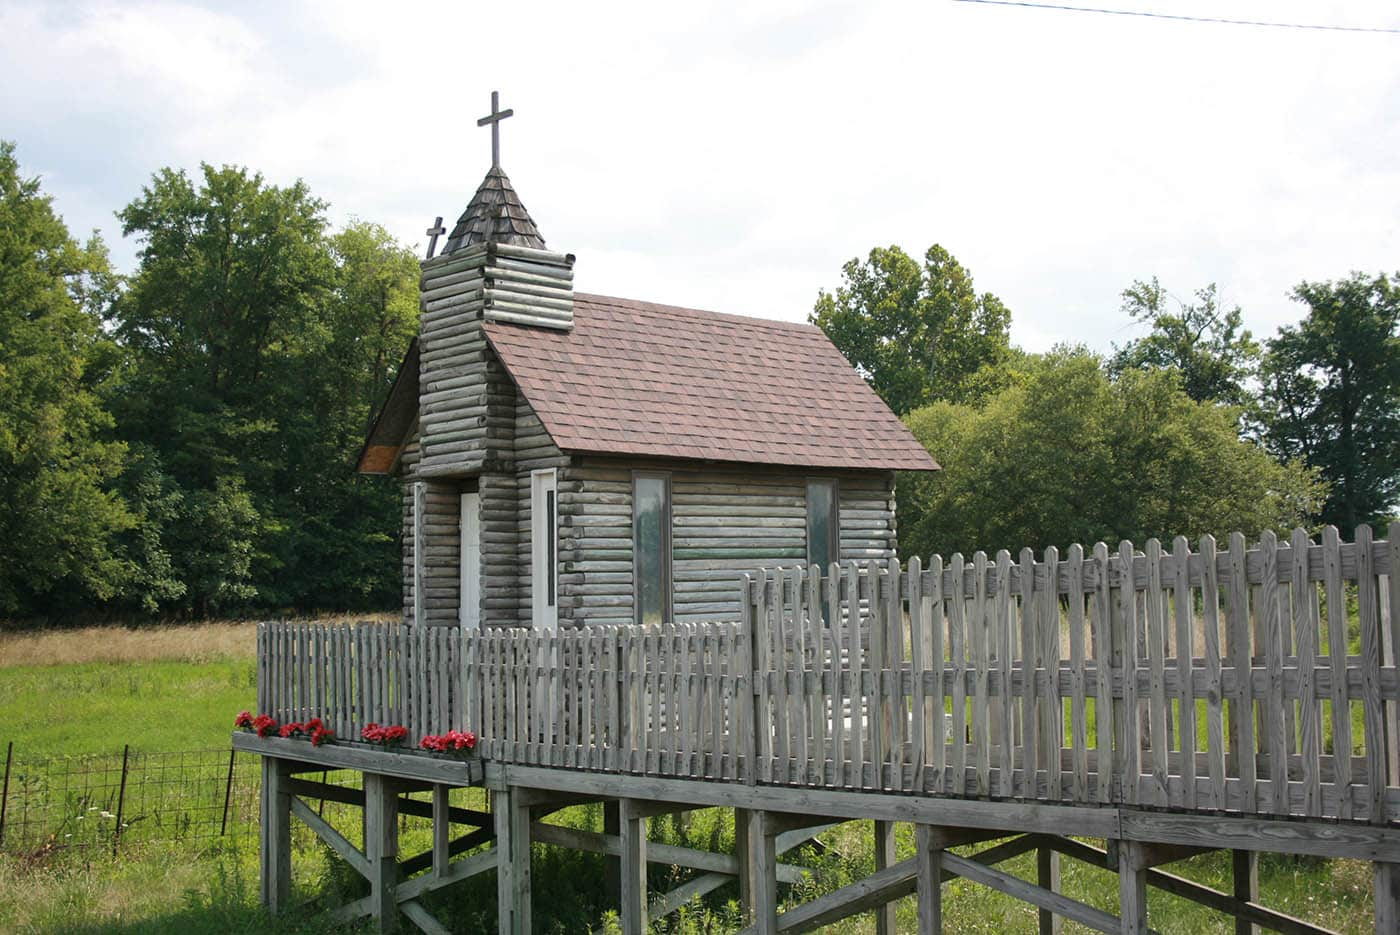 The Traveler's Chapel - a tiny church in Nashville, Illinois